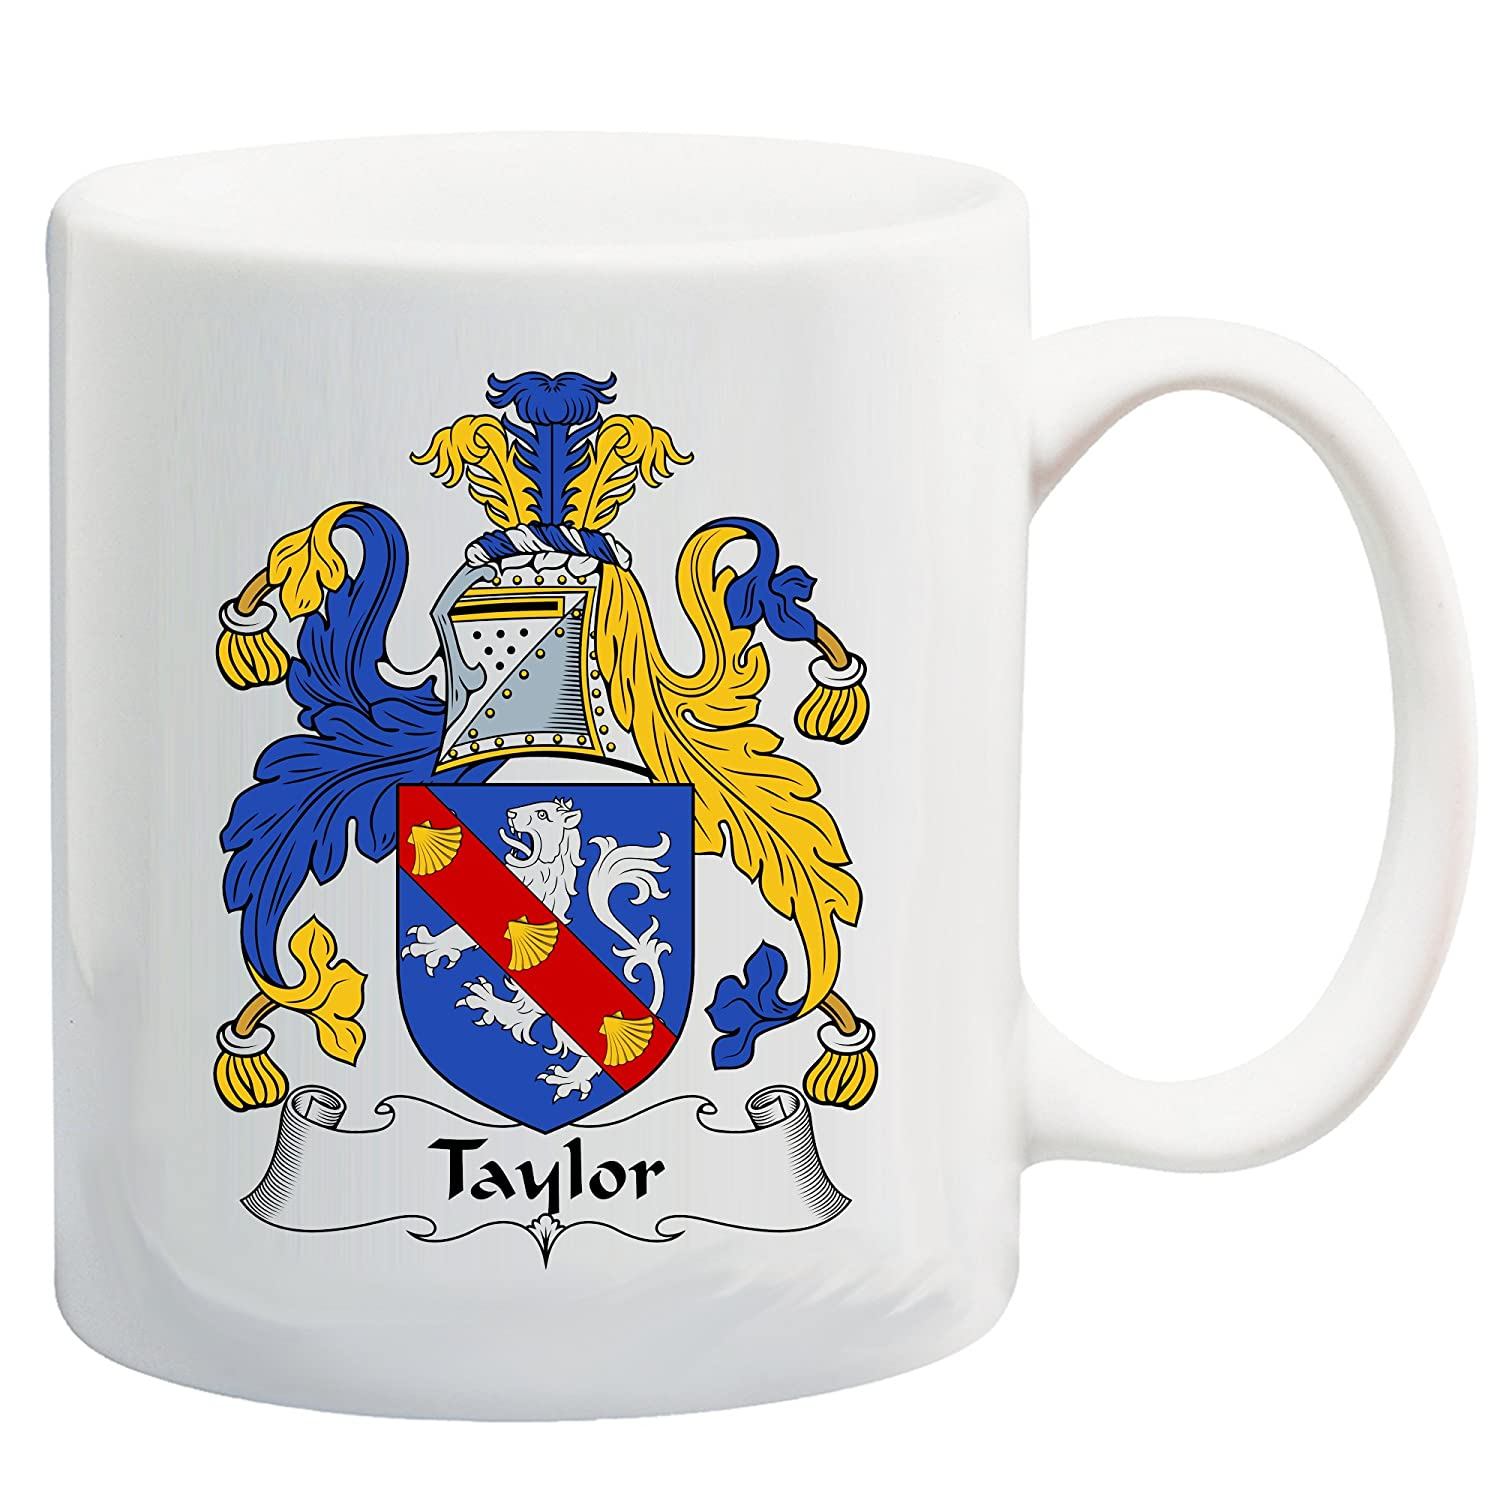 Taylor Coat of Arms/Taylor Family Crest 11 Oz Ceramic Coffee/Cocoa Mug by Carpe Diem Designs, Made in the U.S.A.